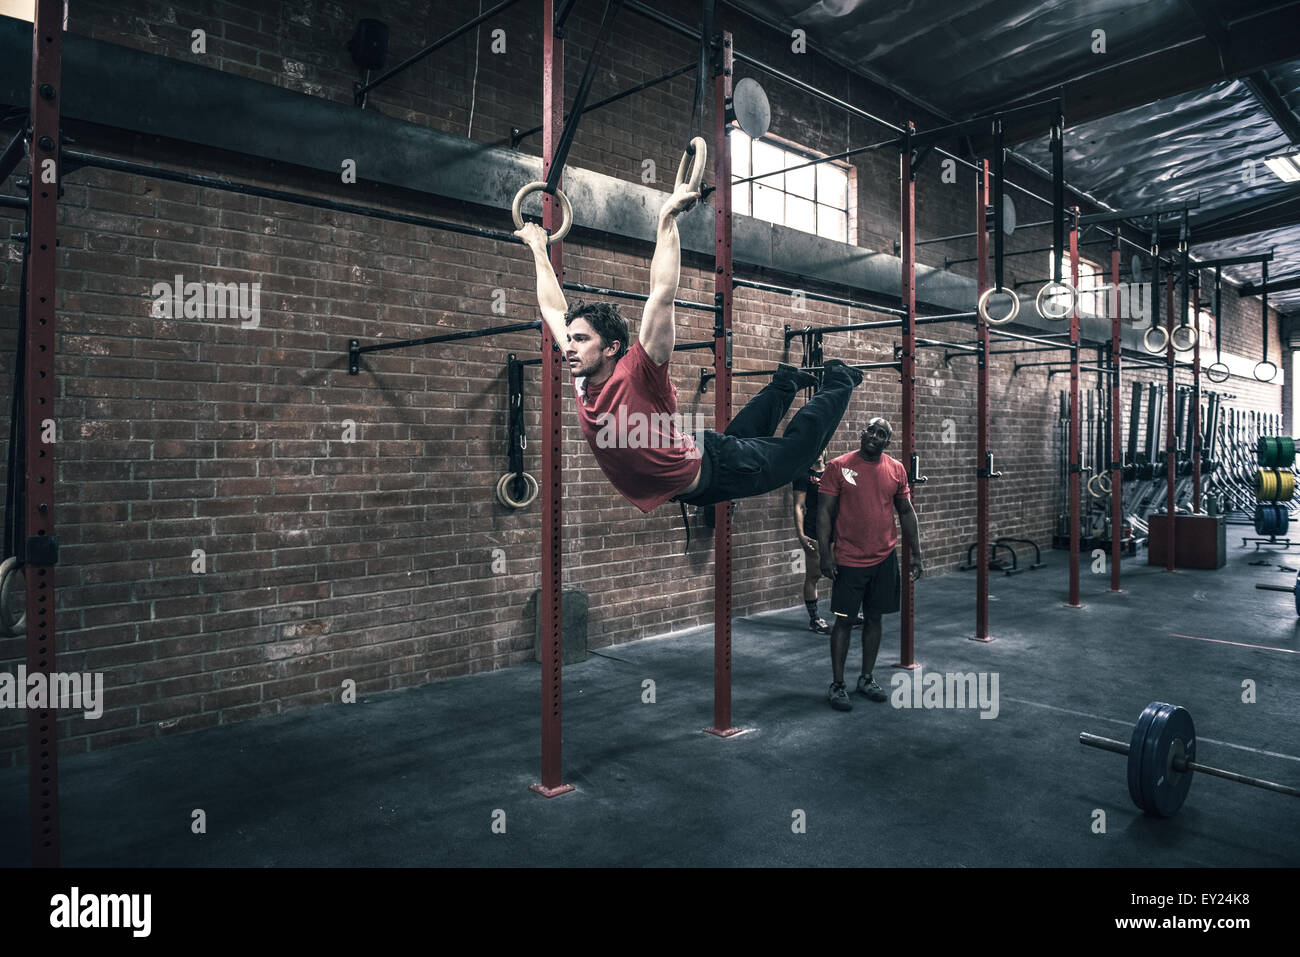 Young man swinging on gym rings in gym Stock Photo